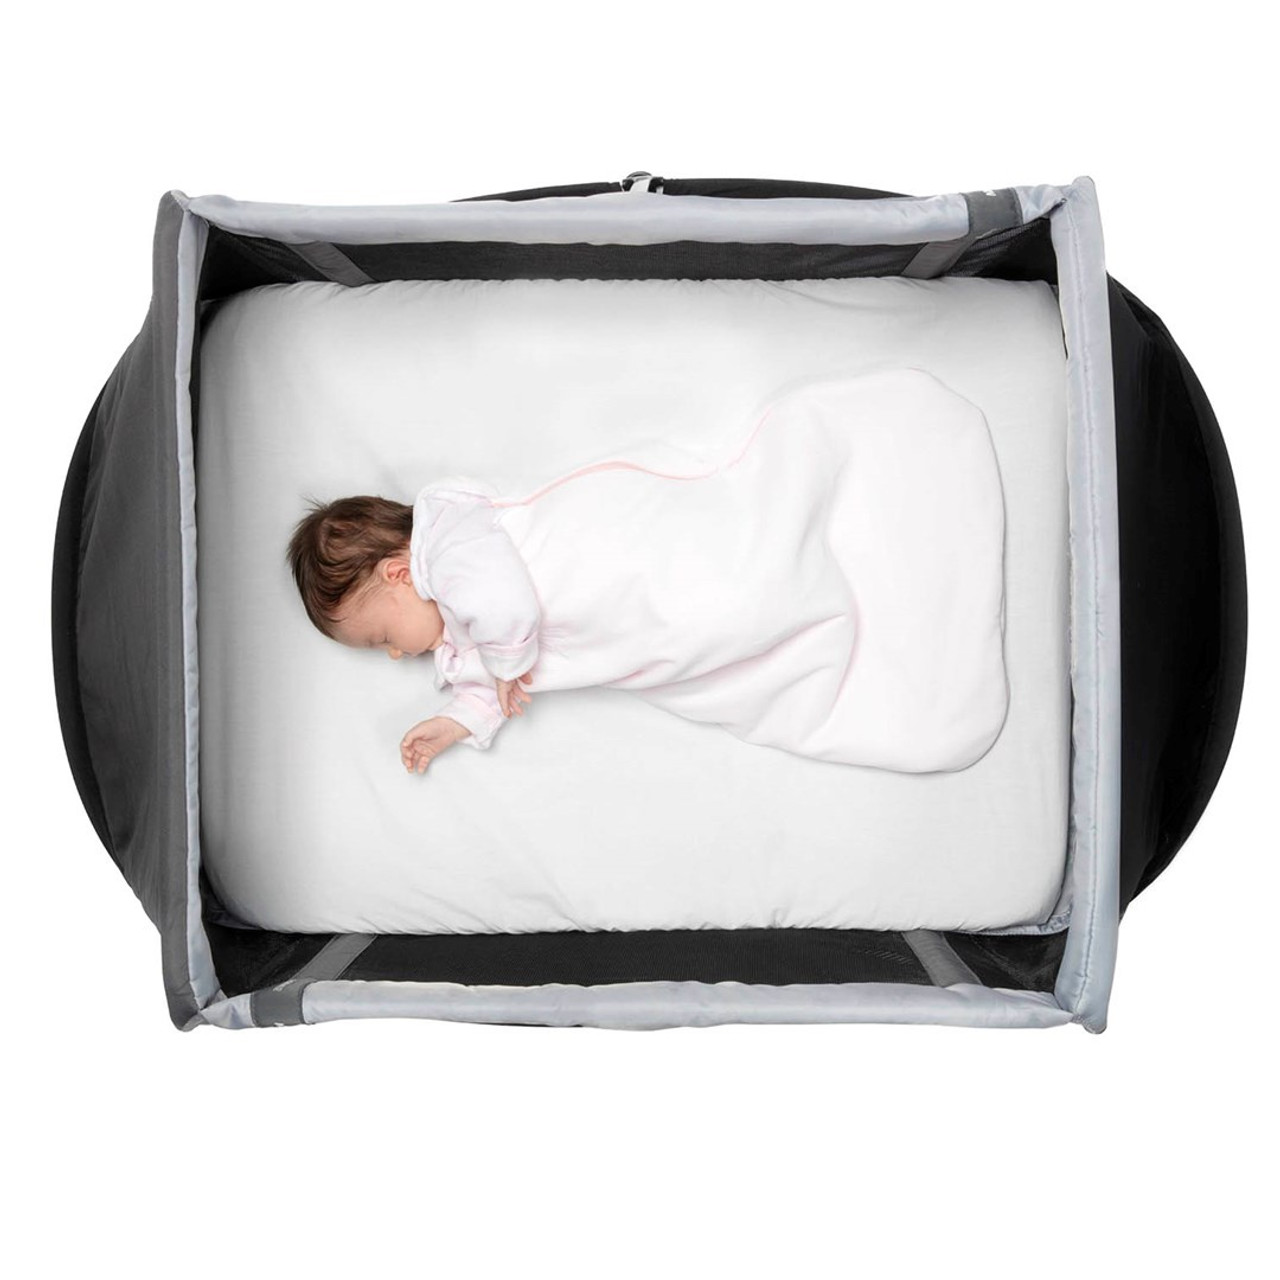 Aeromoov Instant Travel Cot GREY ROCK at Baby Barn Discounts You can set up and pack up the AeroMoov instant travel cot in seconds!